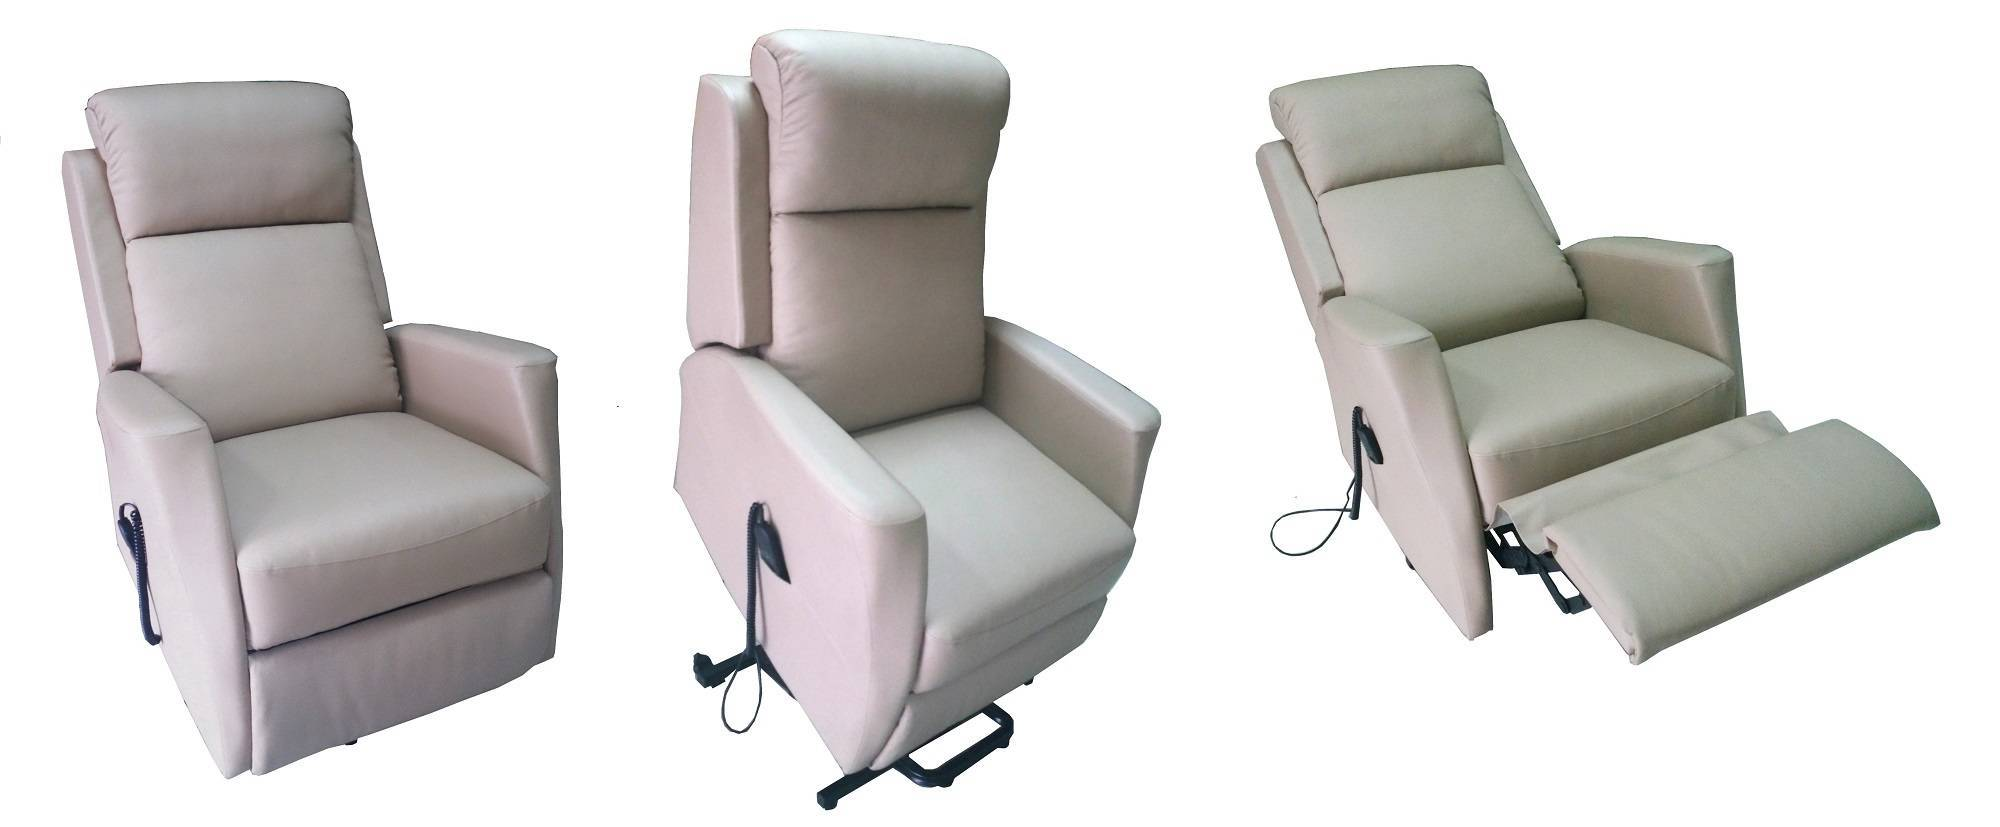 BH-8200 Lift Chair, Recliner Chair, Home Care Furniture, Home Furniture